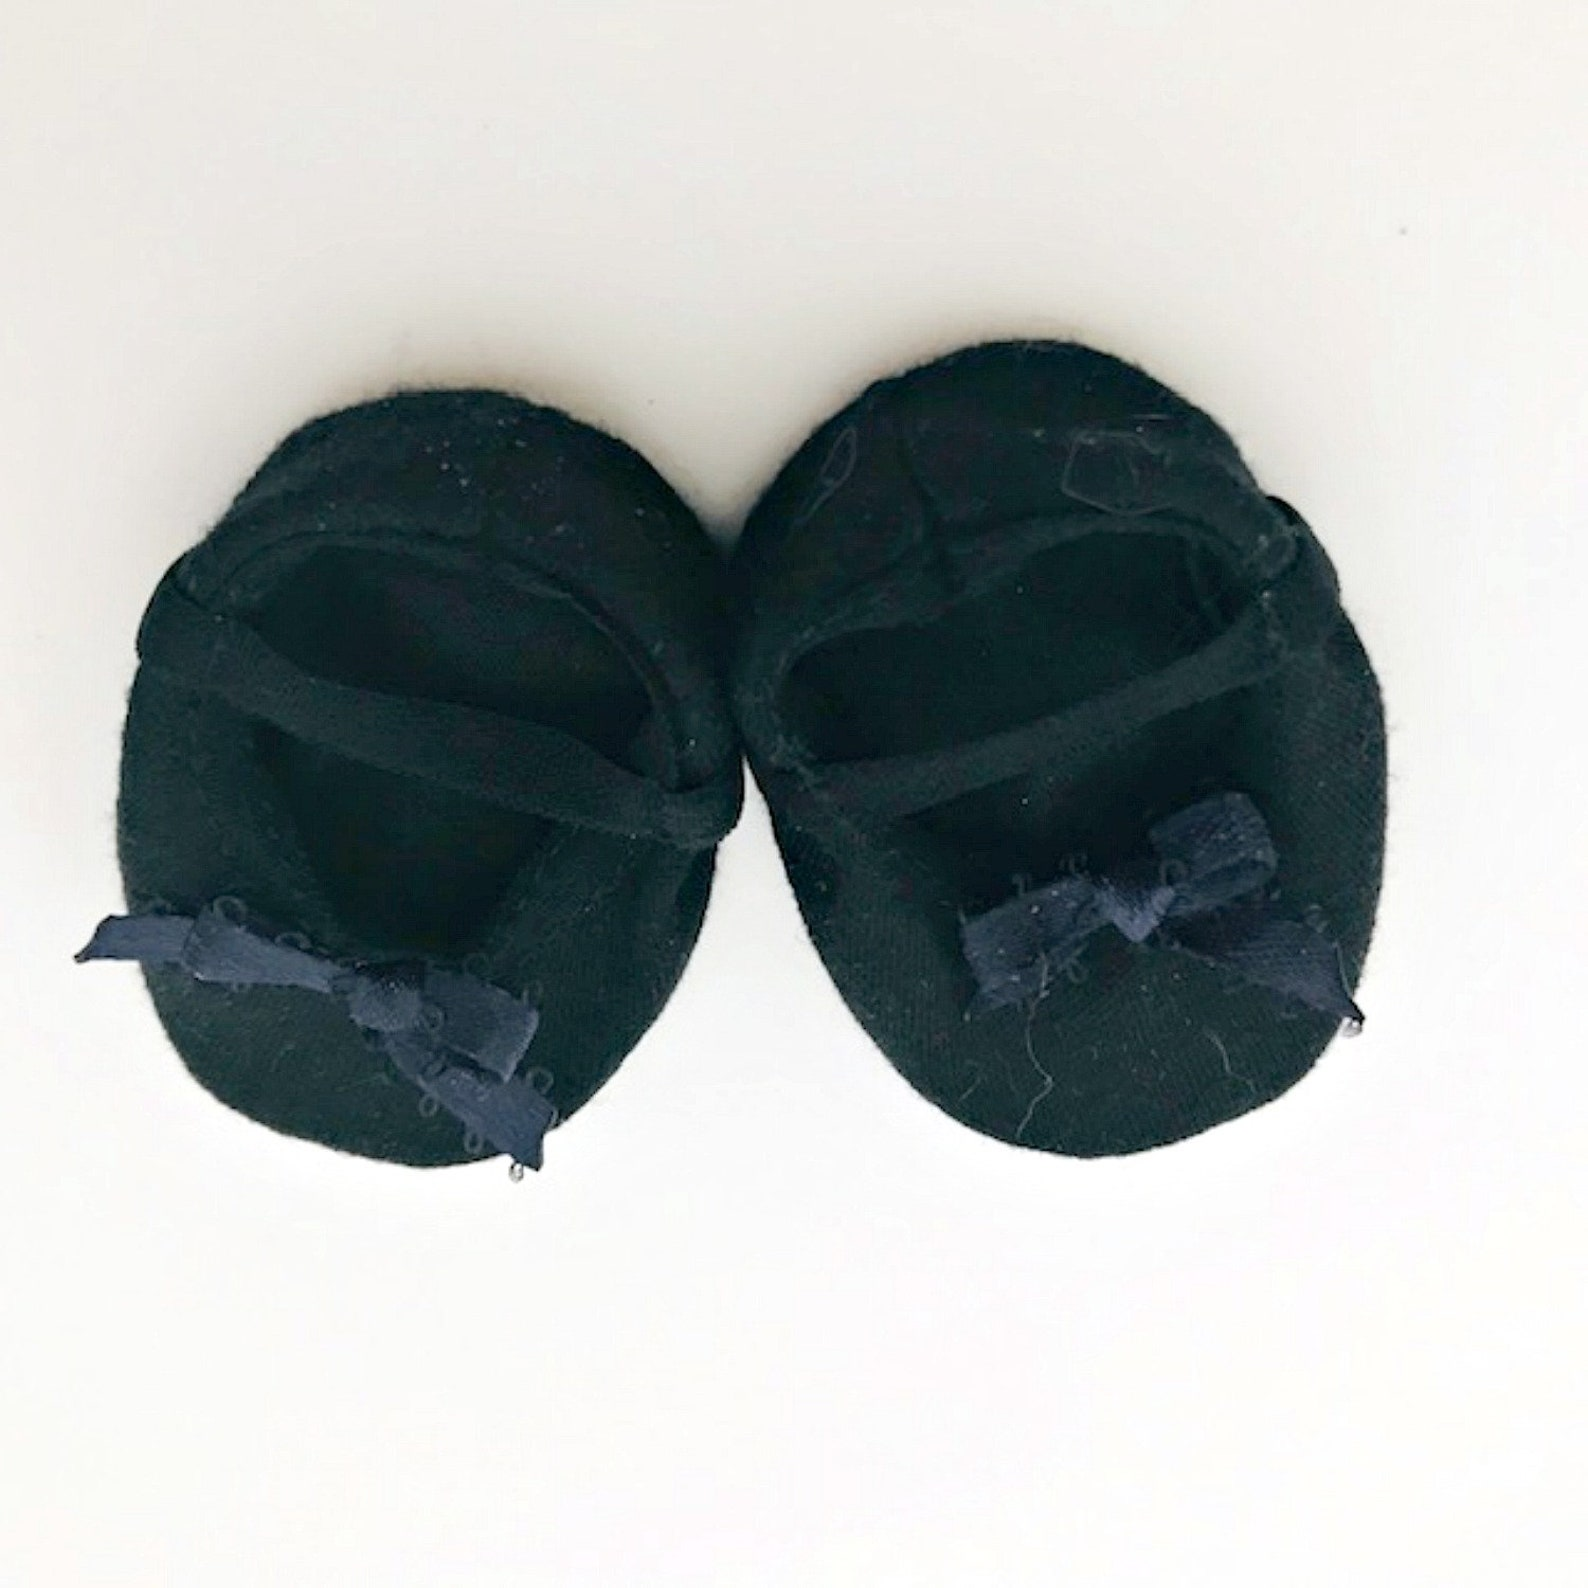 black ballet slippers for 18 inch dolls - 18 inch doll shoes - dance shoes for dolls - doll accessories - doll clothes - gifts f